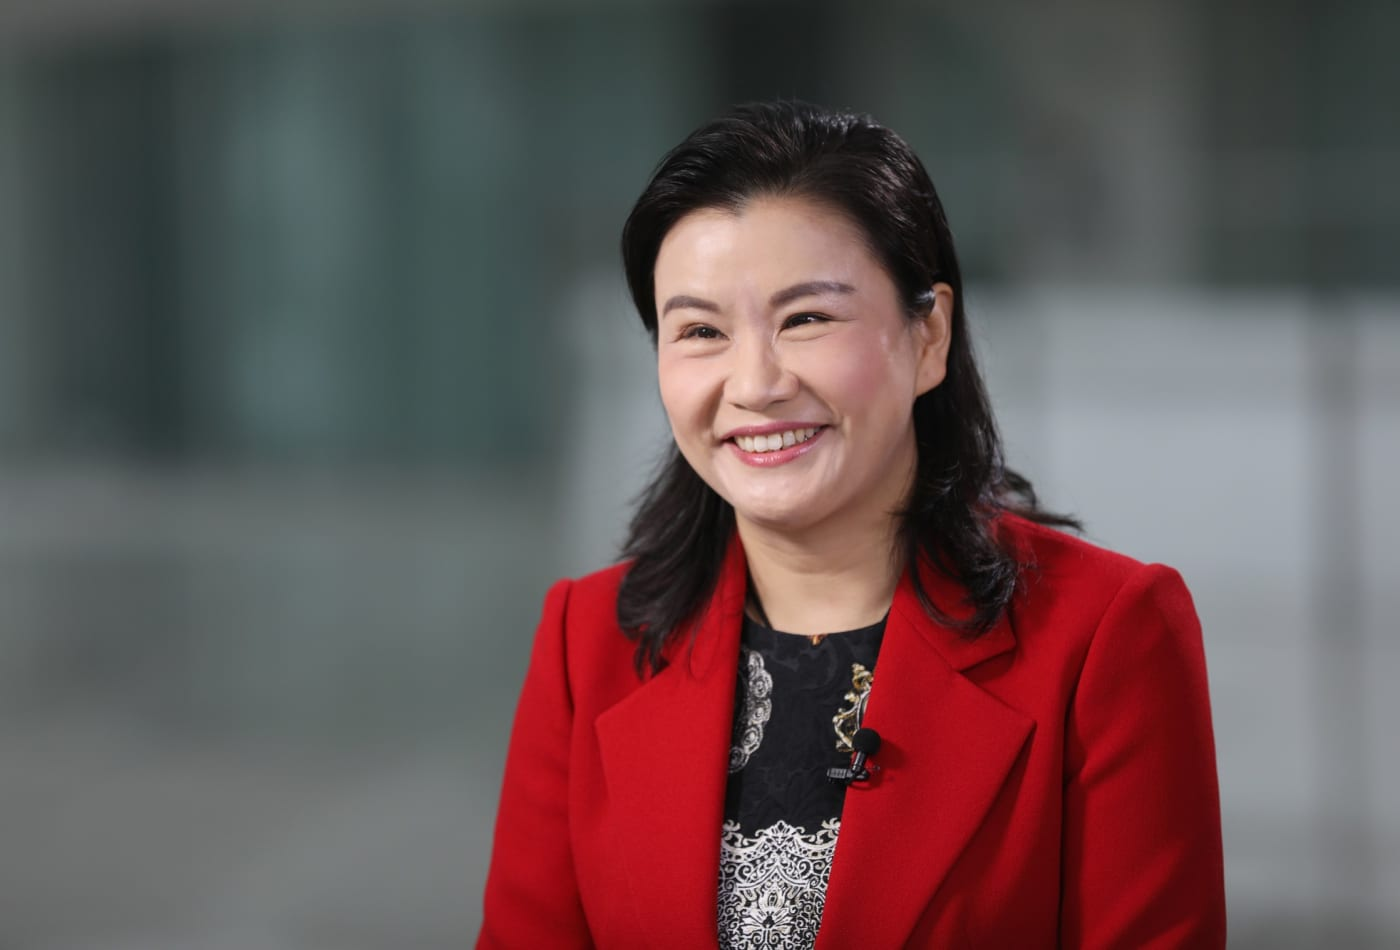 World's richest self-made woman Zhou Qunfei shares the key to success